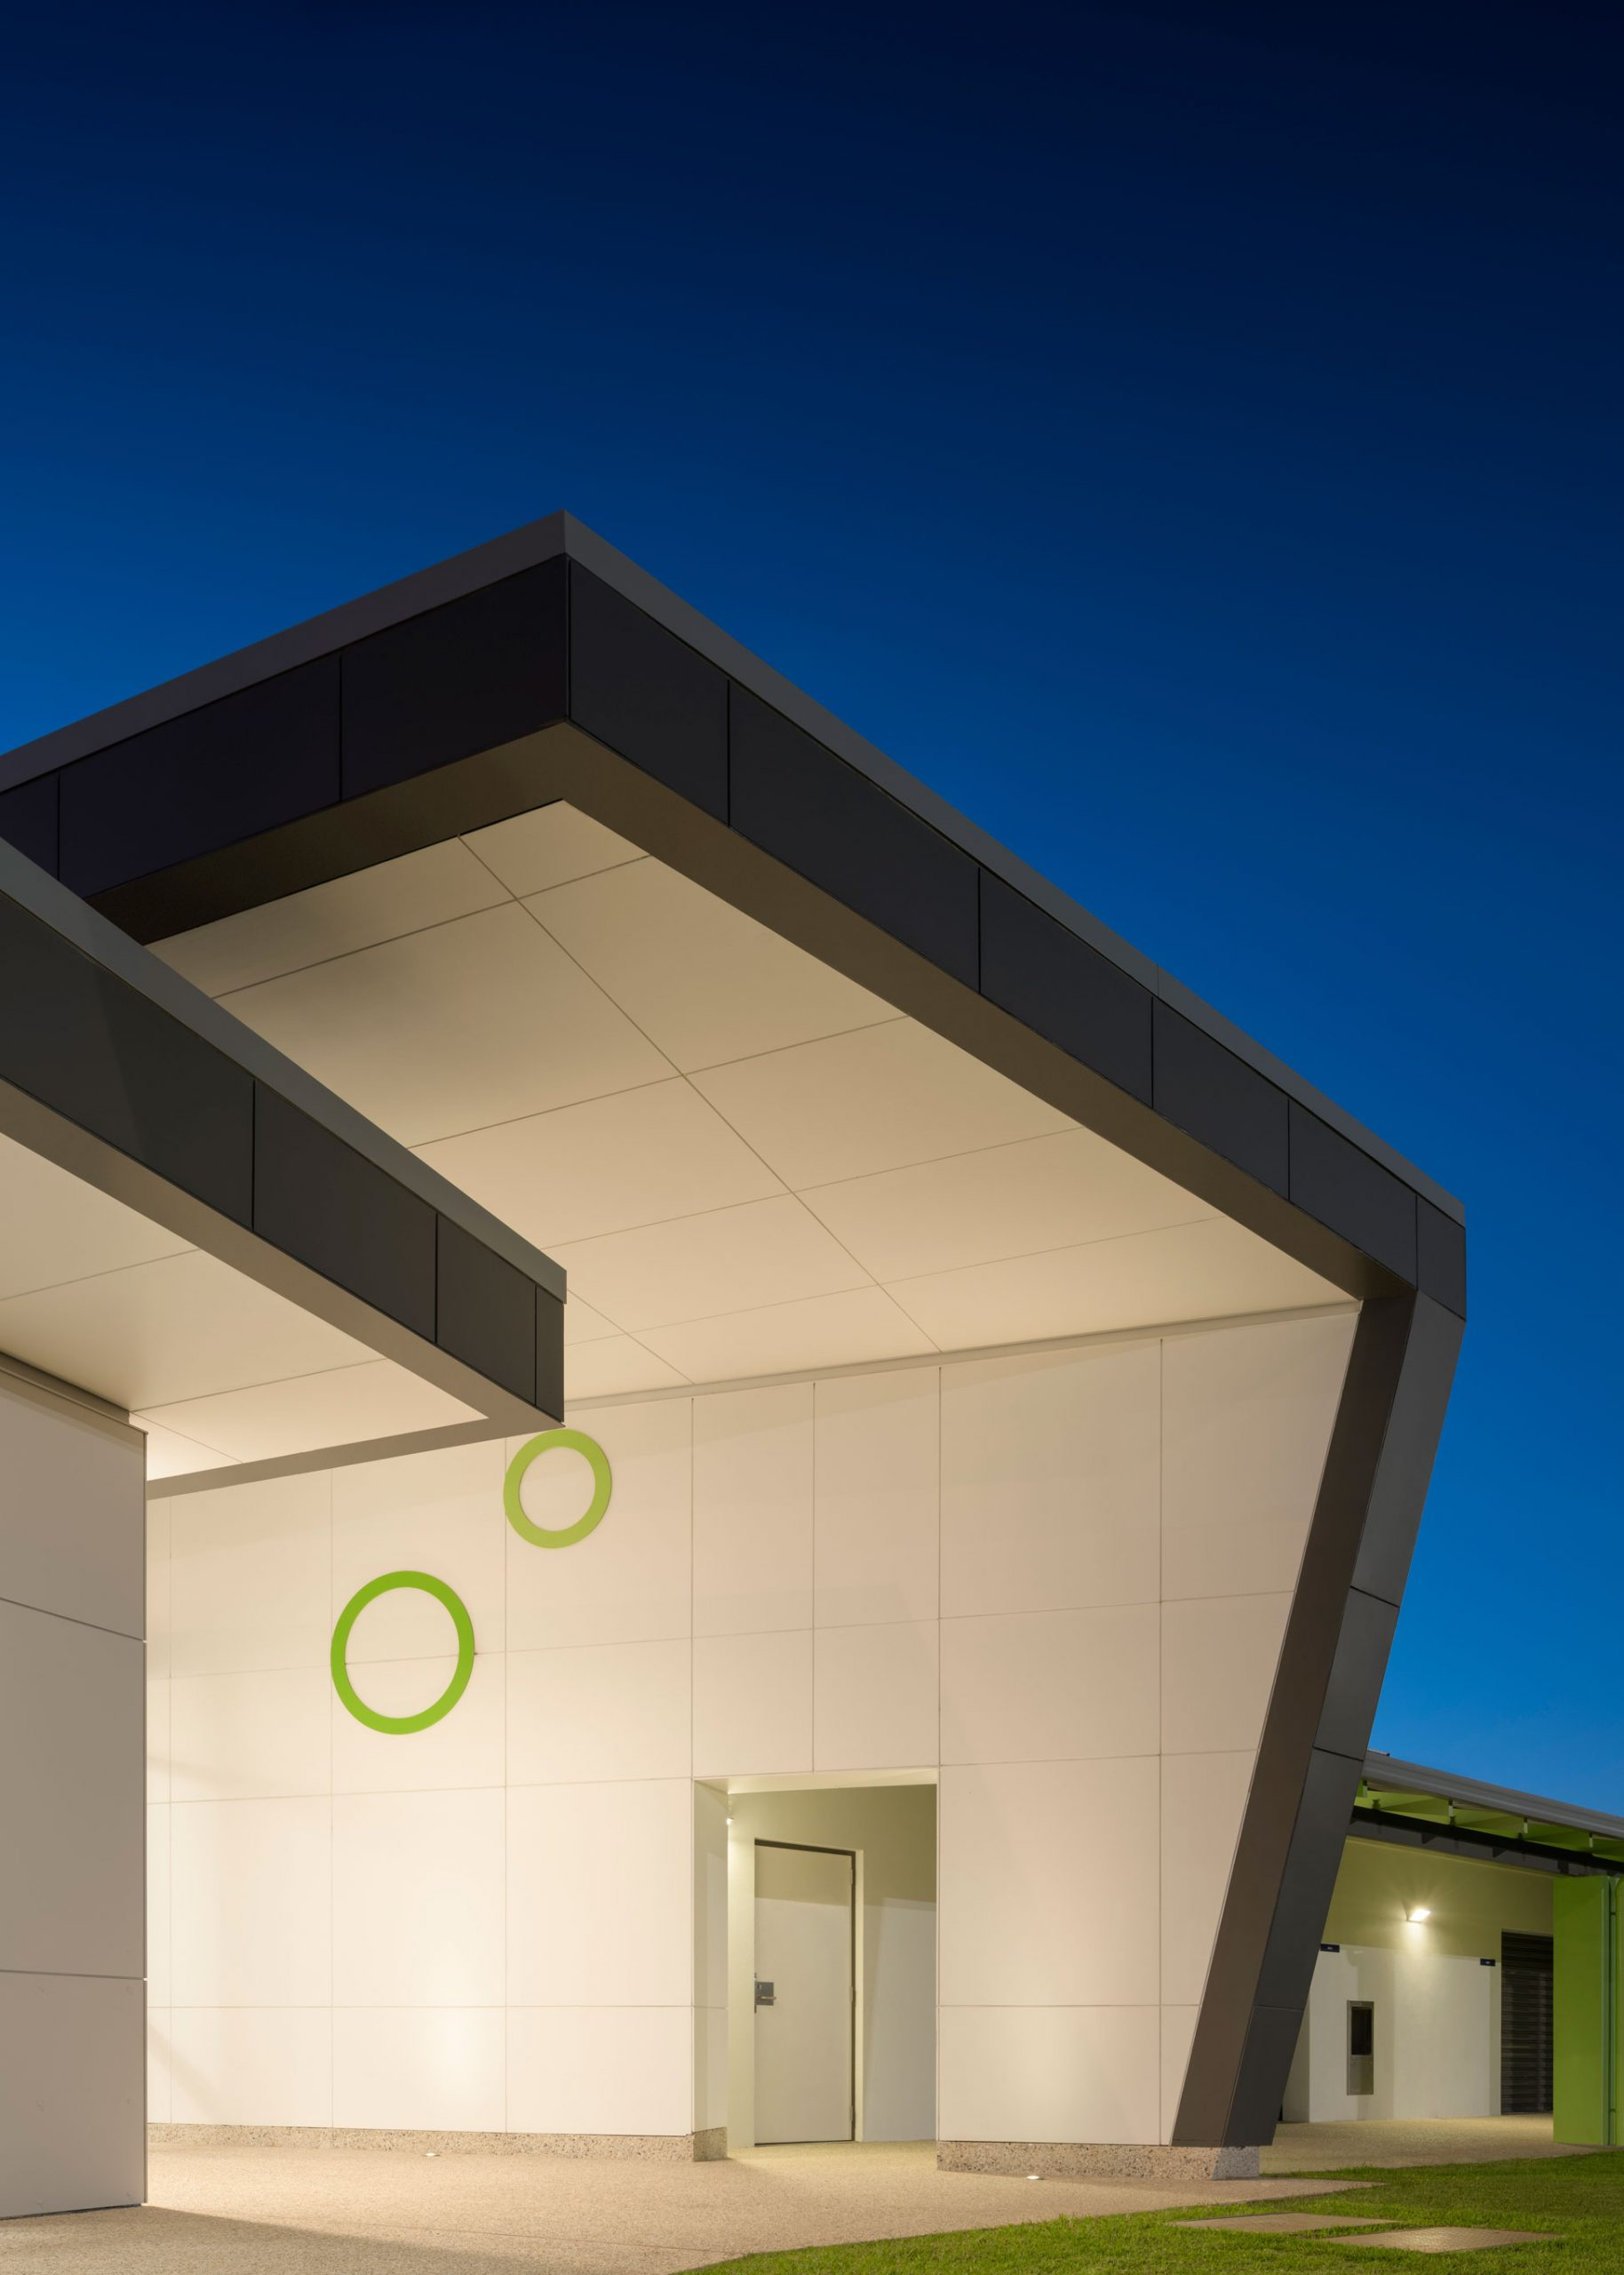 Carine Hall Rec Centre entrance lit up at night, with white angled walls with green circles and grey angled roof